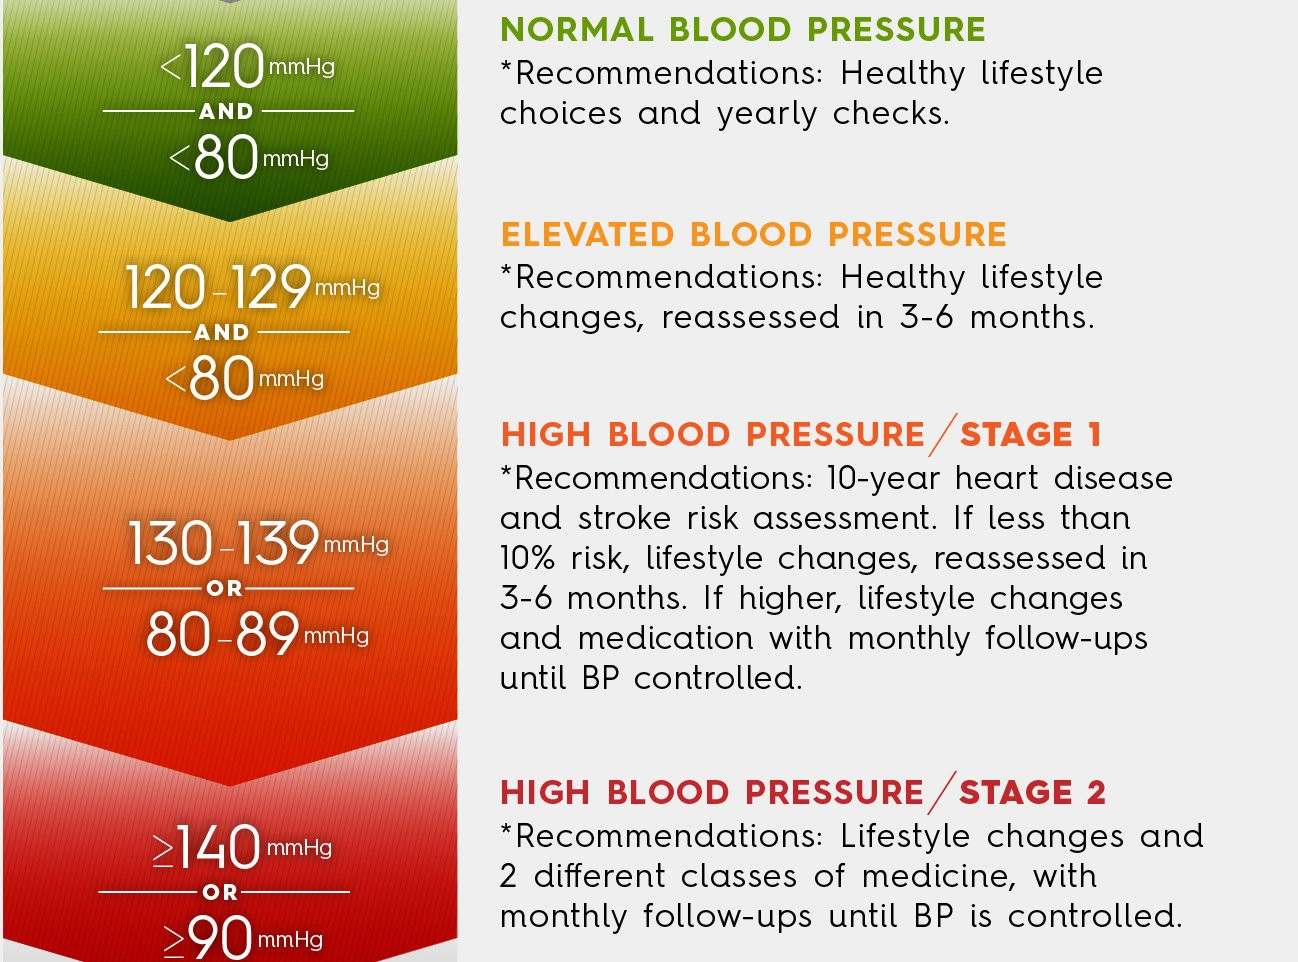 Half Of U S Adults Have High Blood Pressure Under New Guidelines